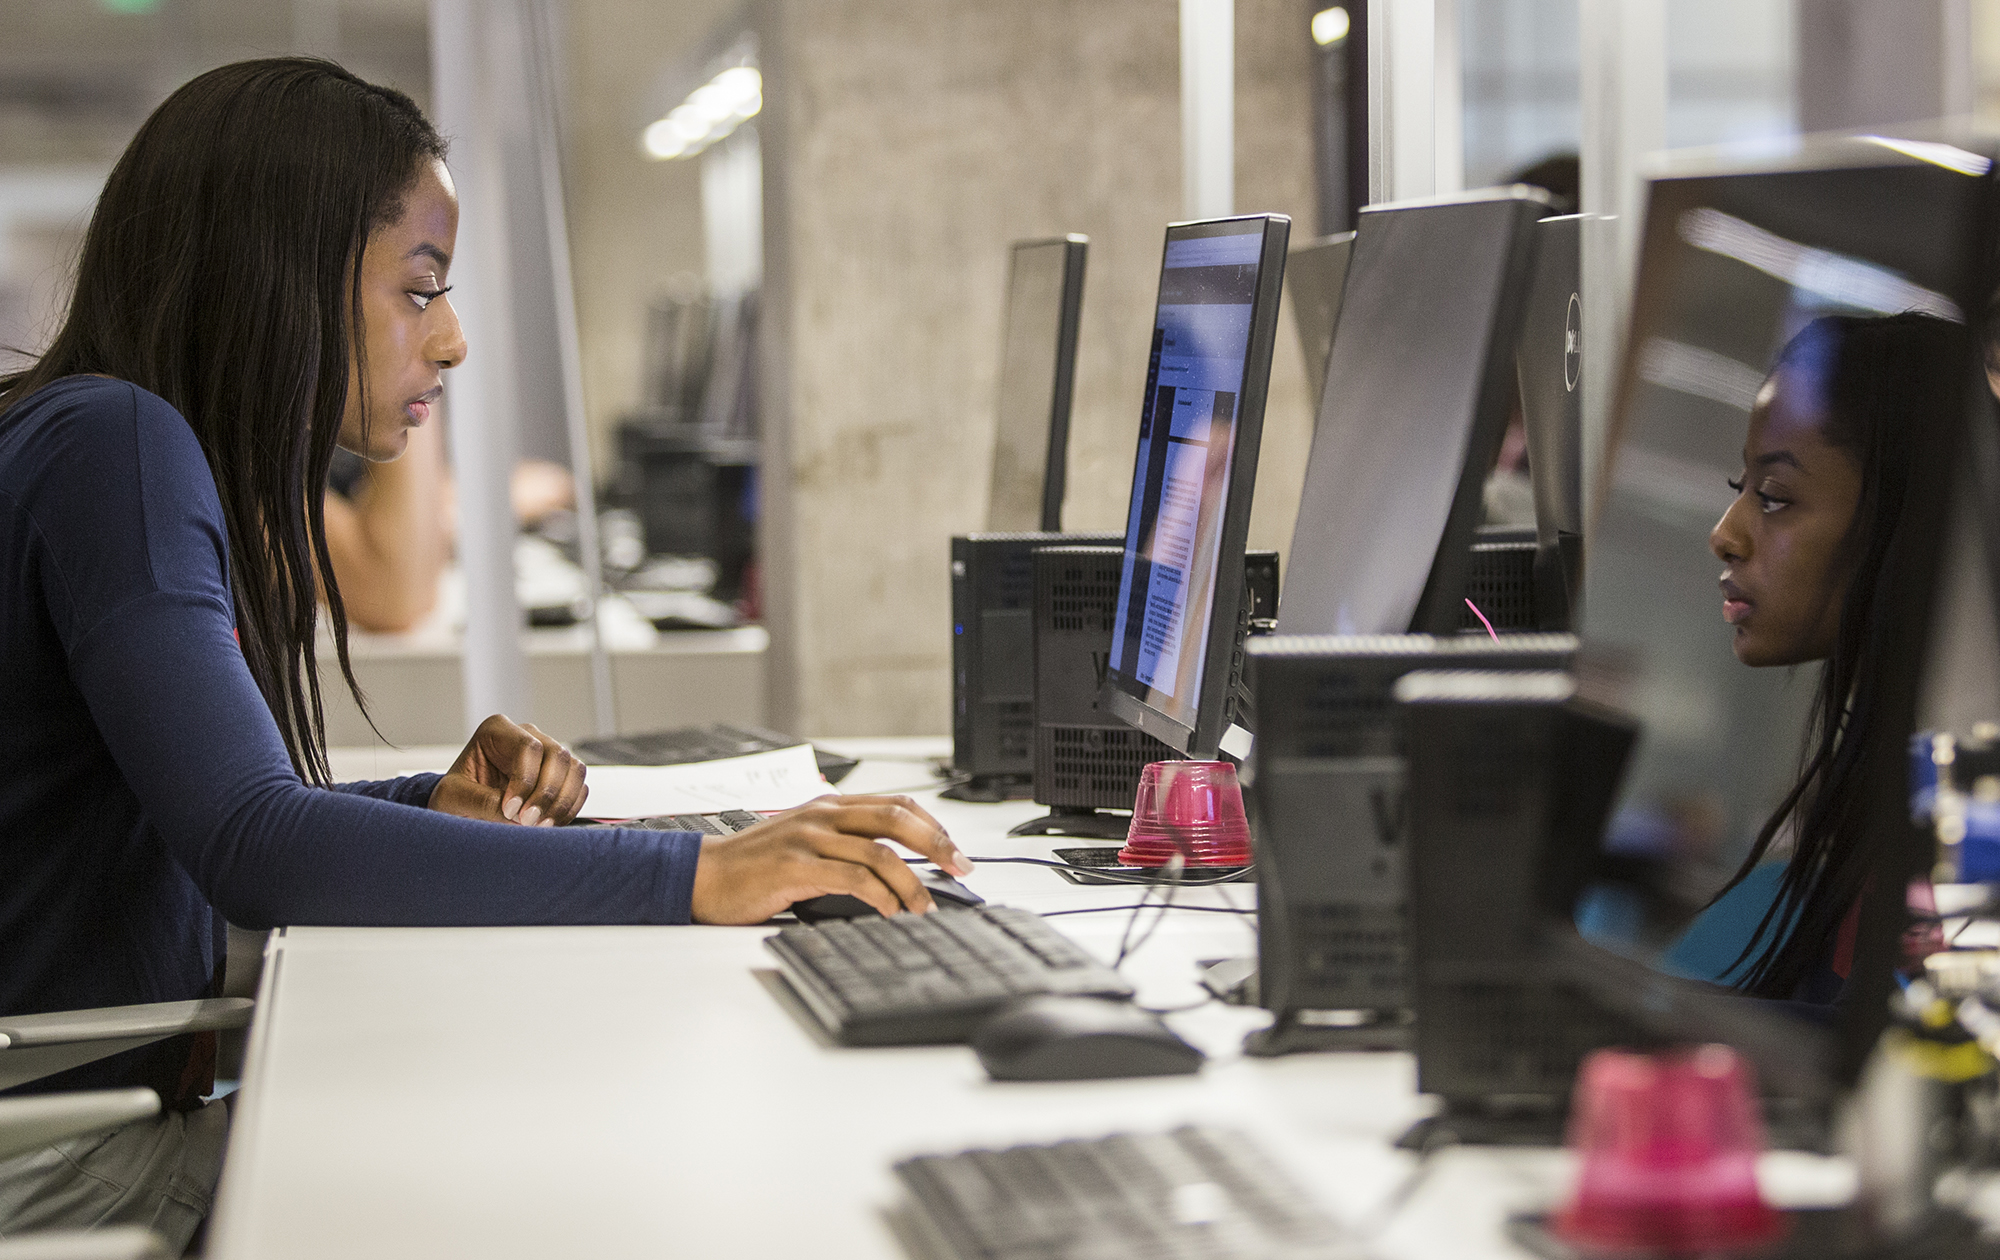 A student studies on her computer